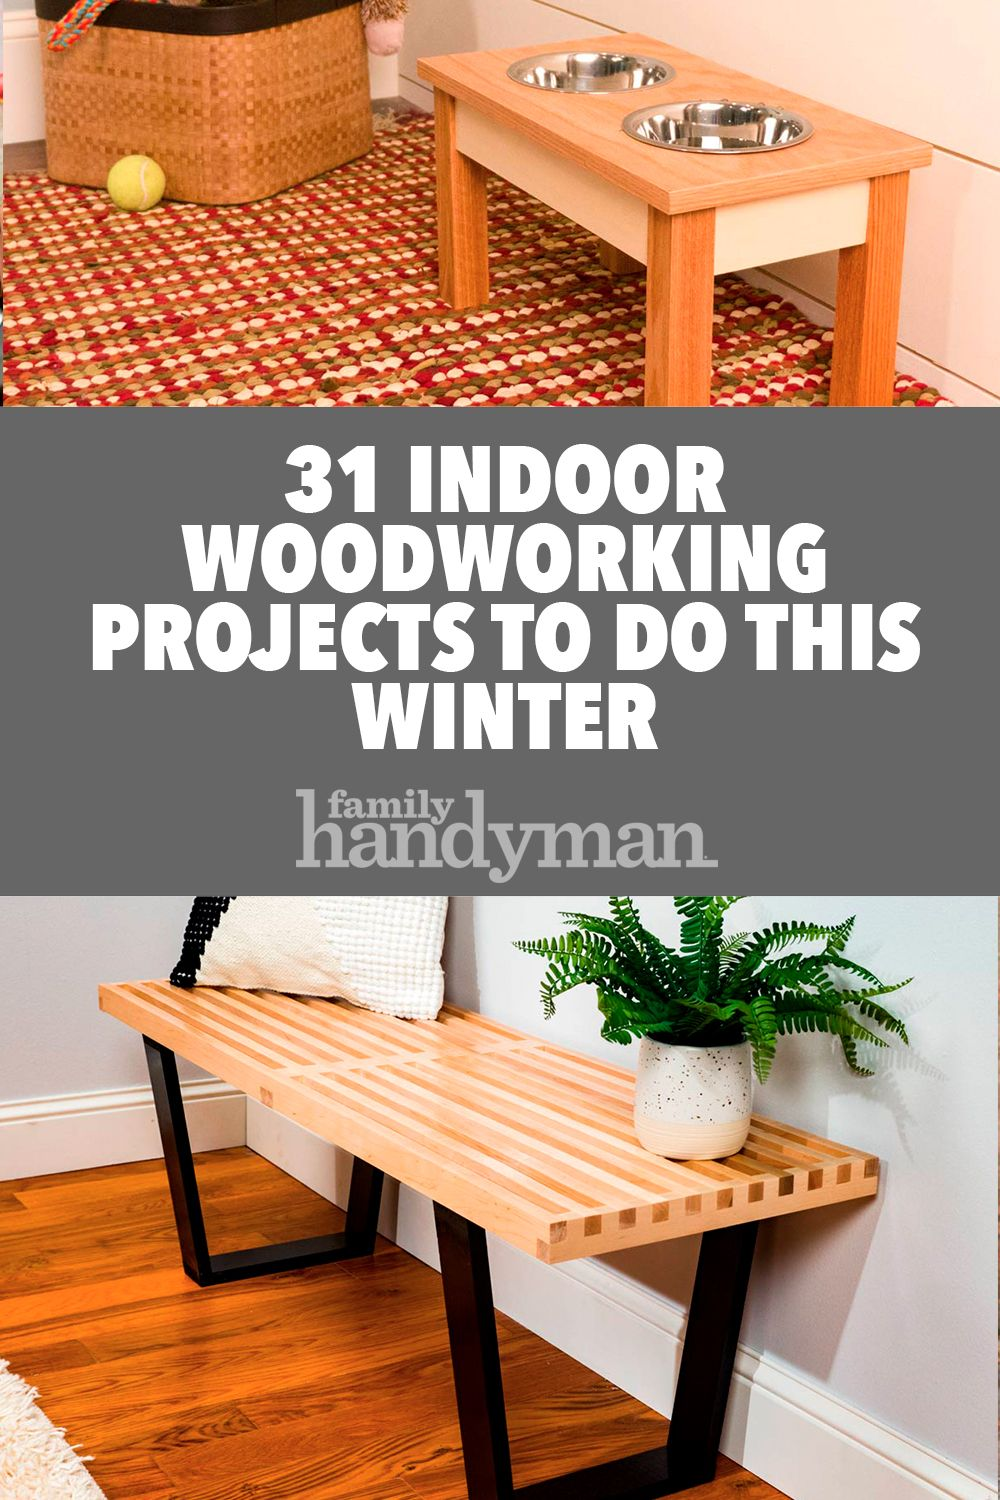 31 Indoor Woodworking Projects To Do This Winter Easy Woodworking Projects Woodworking Projects Plans Woodworking Projects